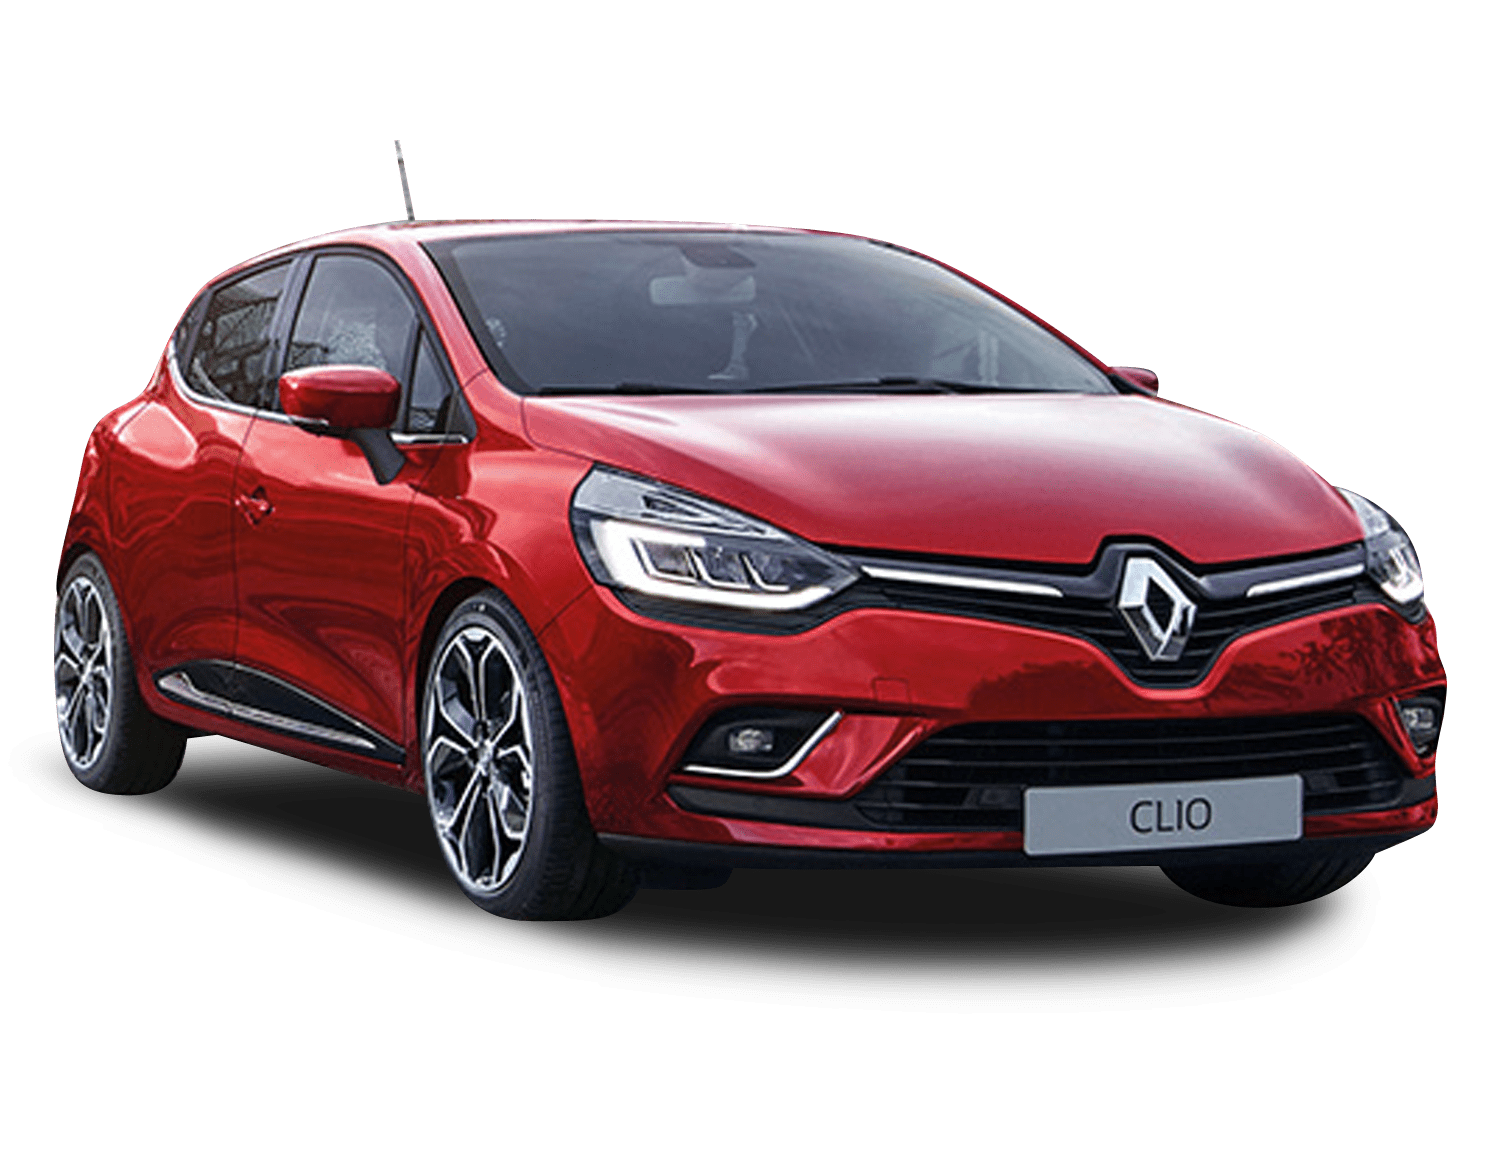 Renault Clio Review Colours For Sale Price Interior Specs Carsguide